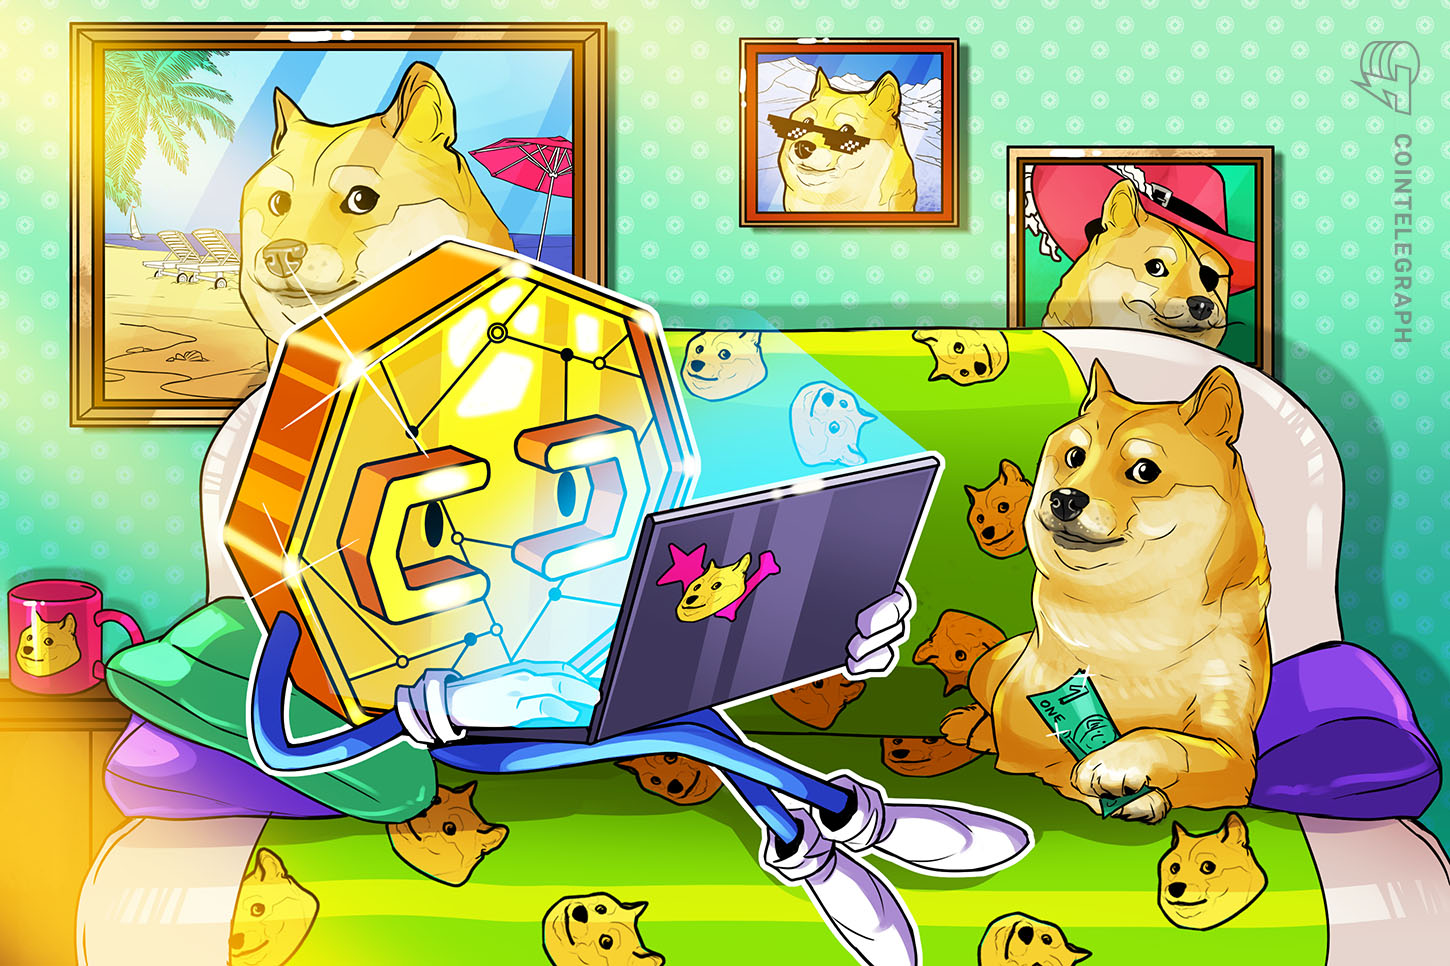 Doge meme hits $220M valuation, as Sotheby's Bored Apes auction is tipped to fetch $18M